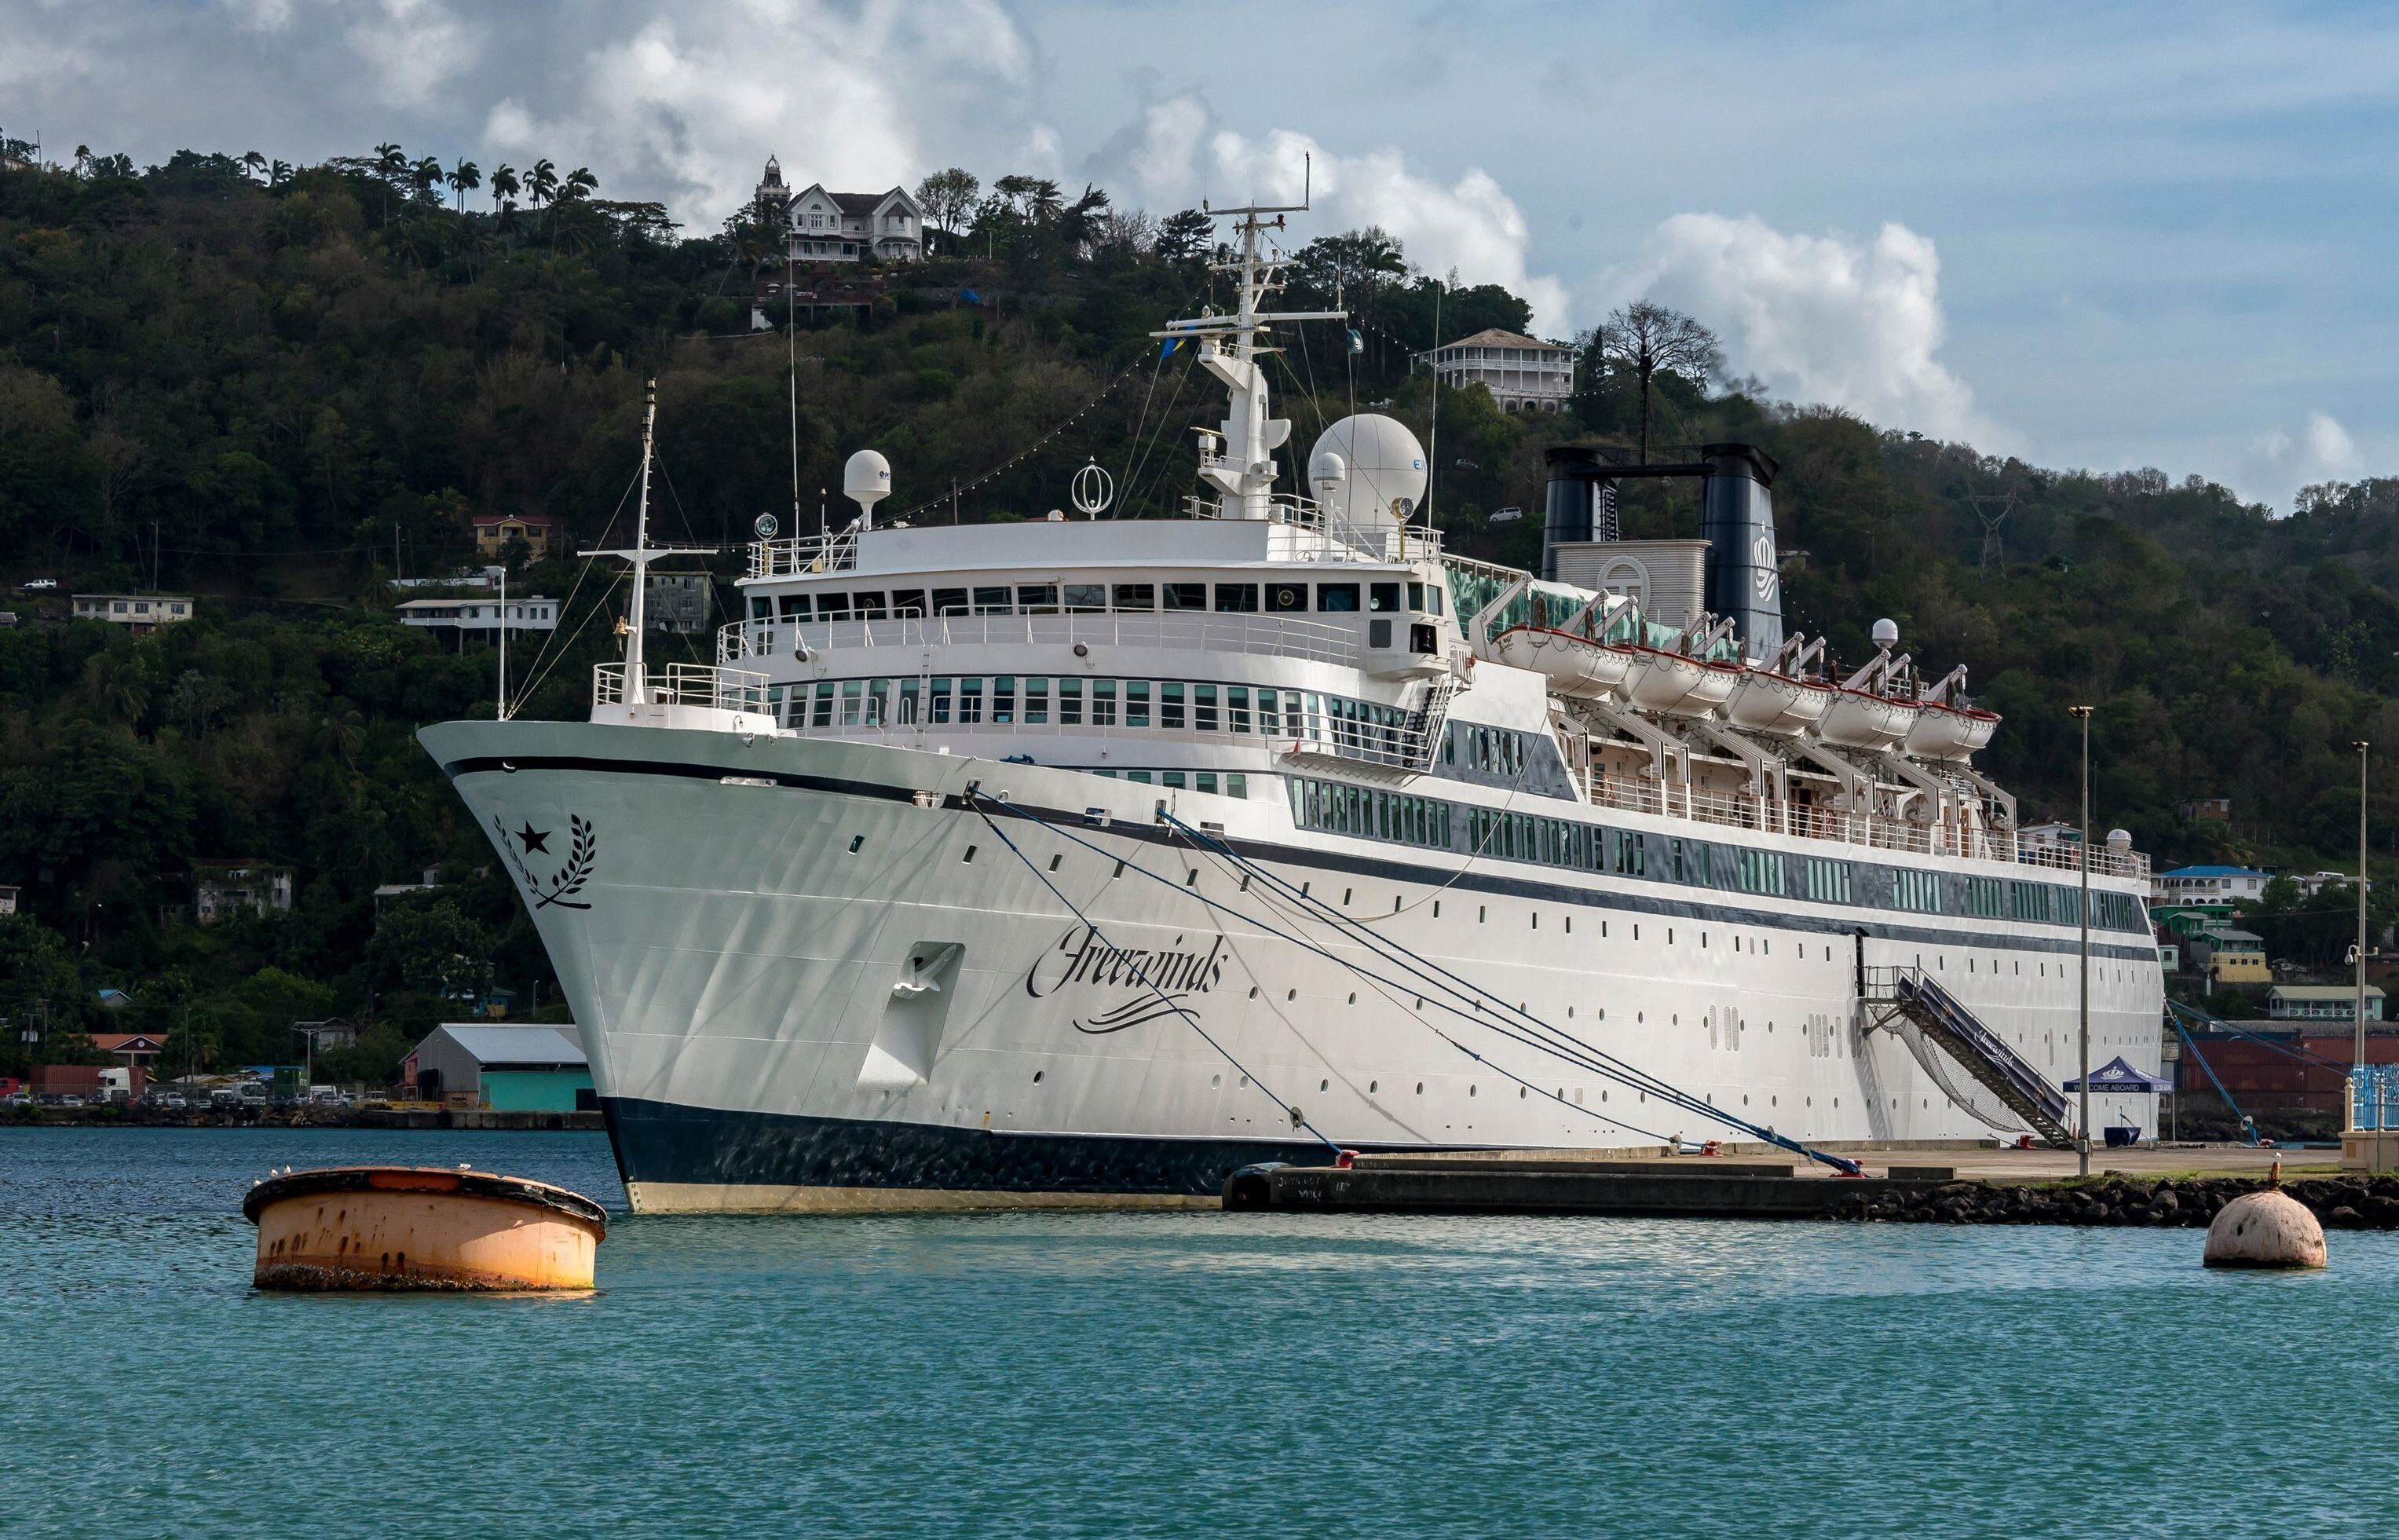 The Freewinds cruise ship owned by the Church of Scientology is seen docked in quarantine at the Point Seraphine terminal in Castries, Saint Lucia, on May 2, 2019, after a measles case was detected onboard. - A cruise ship owned by the Church of Scientology has been quarantined in Saint Lucia for two days because of a measles case, health authorities on the Caribbean island said May 2, 2019. The vessel was Thursday docked at the Point Seraphine terminal in the port of the capital Castries, according to an AFP photographer. One man was spotted on board. (Photo by Kirk Elliott / AFP)        (Photo credit should read KIRK ELLIOTT/AFP/Getty Images)